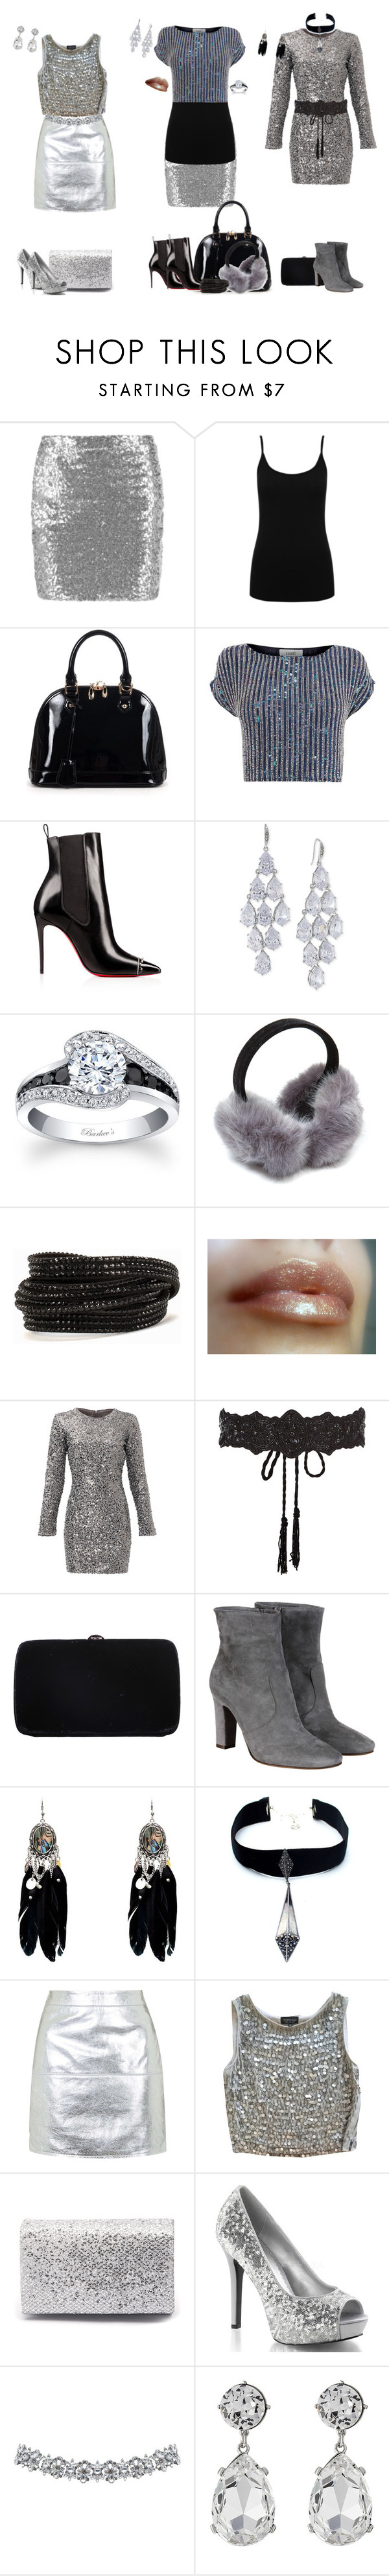 """silver styles"" by svetlozeme ❤ liked on Polyvore featuring M&Co, Relaxfeel, Coast, Carolee, Pieces, Slate & Willow, Accessorize, Sergio Rossi, L'Autre Chose and Child Of Wild"